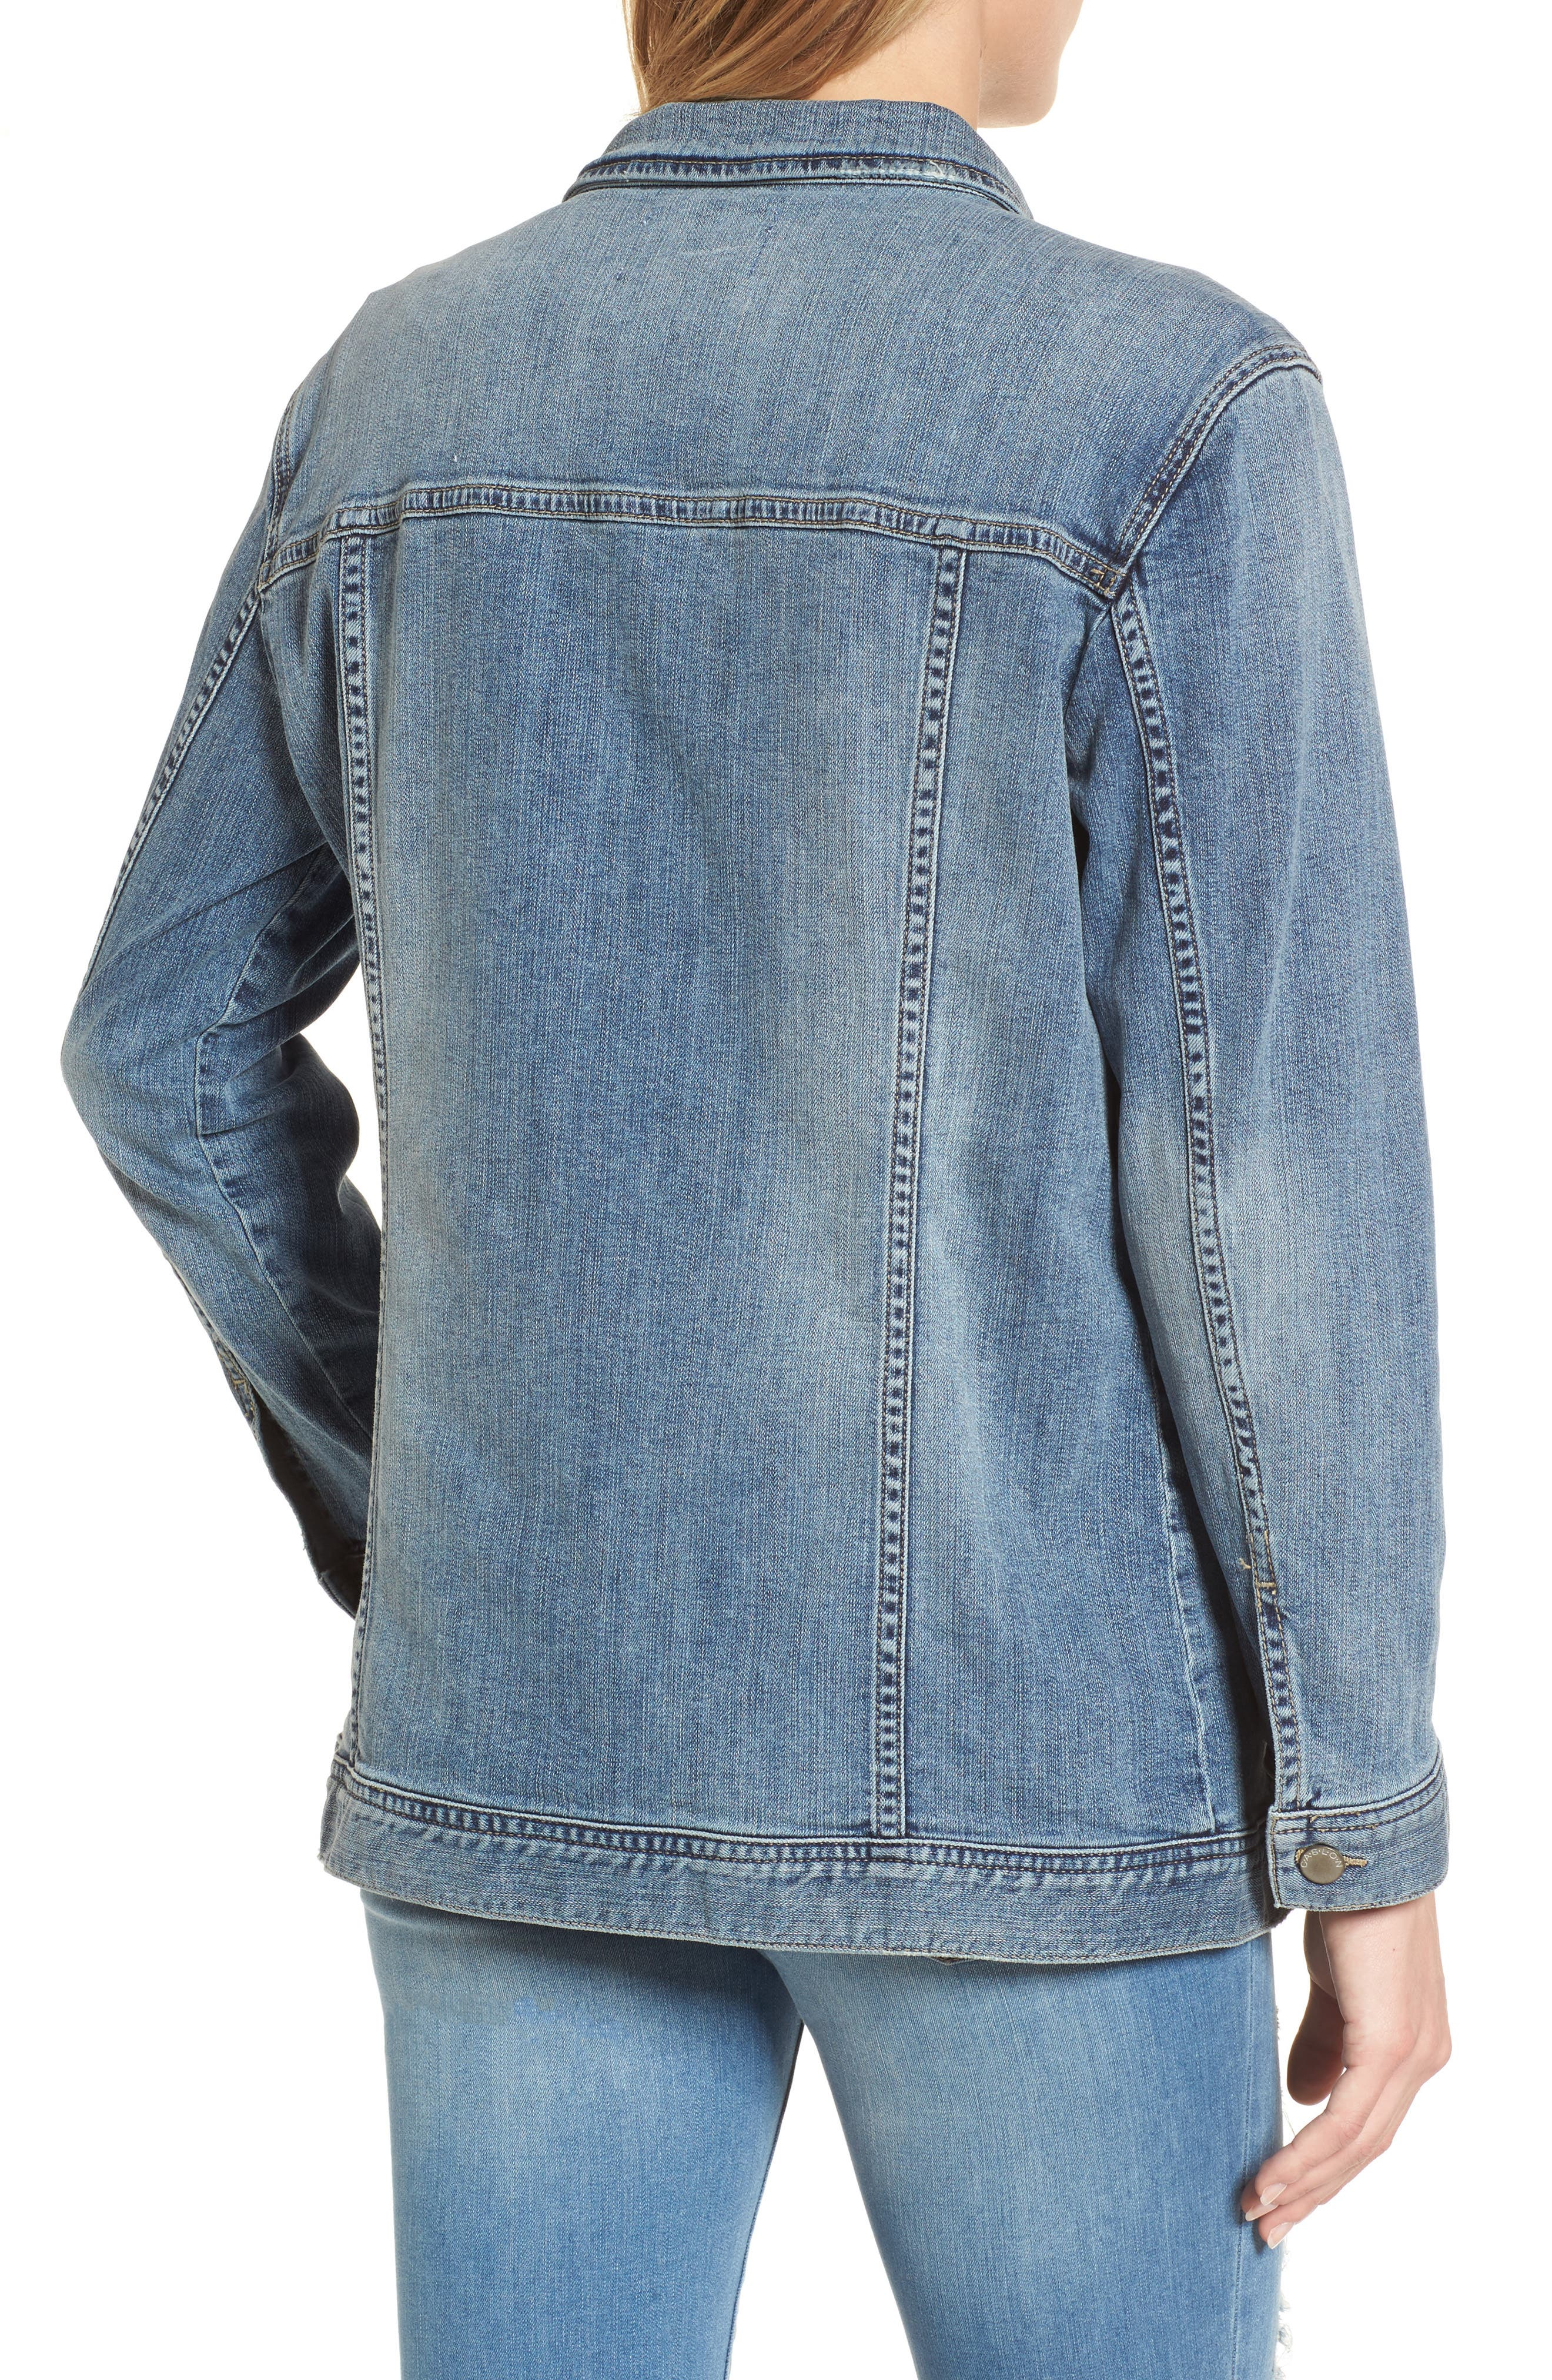 Relaxed Fit Denim Jacket,                             Alternate thumbnail 2, color,                             420